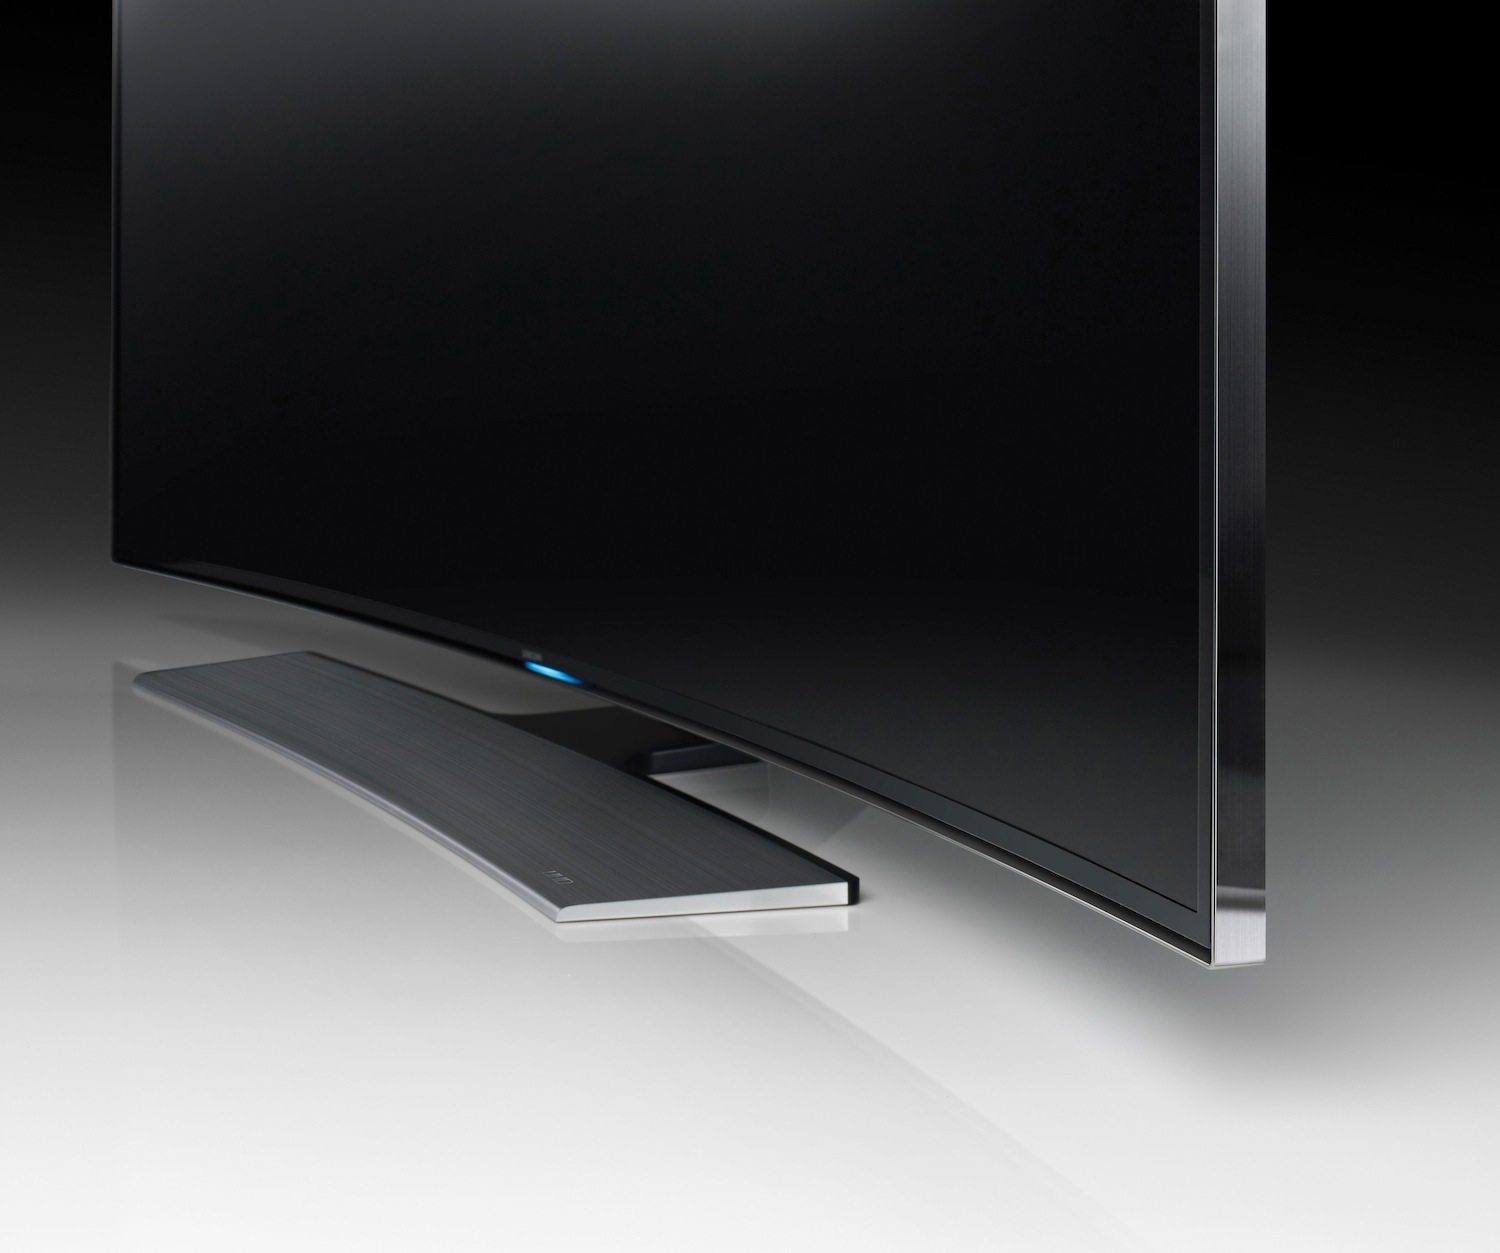 samsung unveils curved uhd tv lg announces flexible curved tv. Black Bedroom Furniture Sets. Home Design Ideas